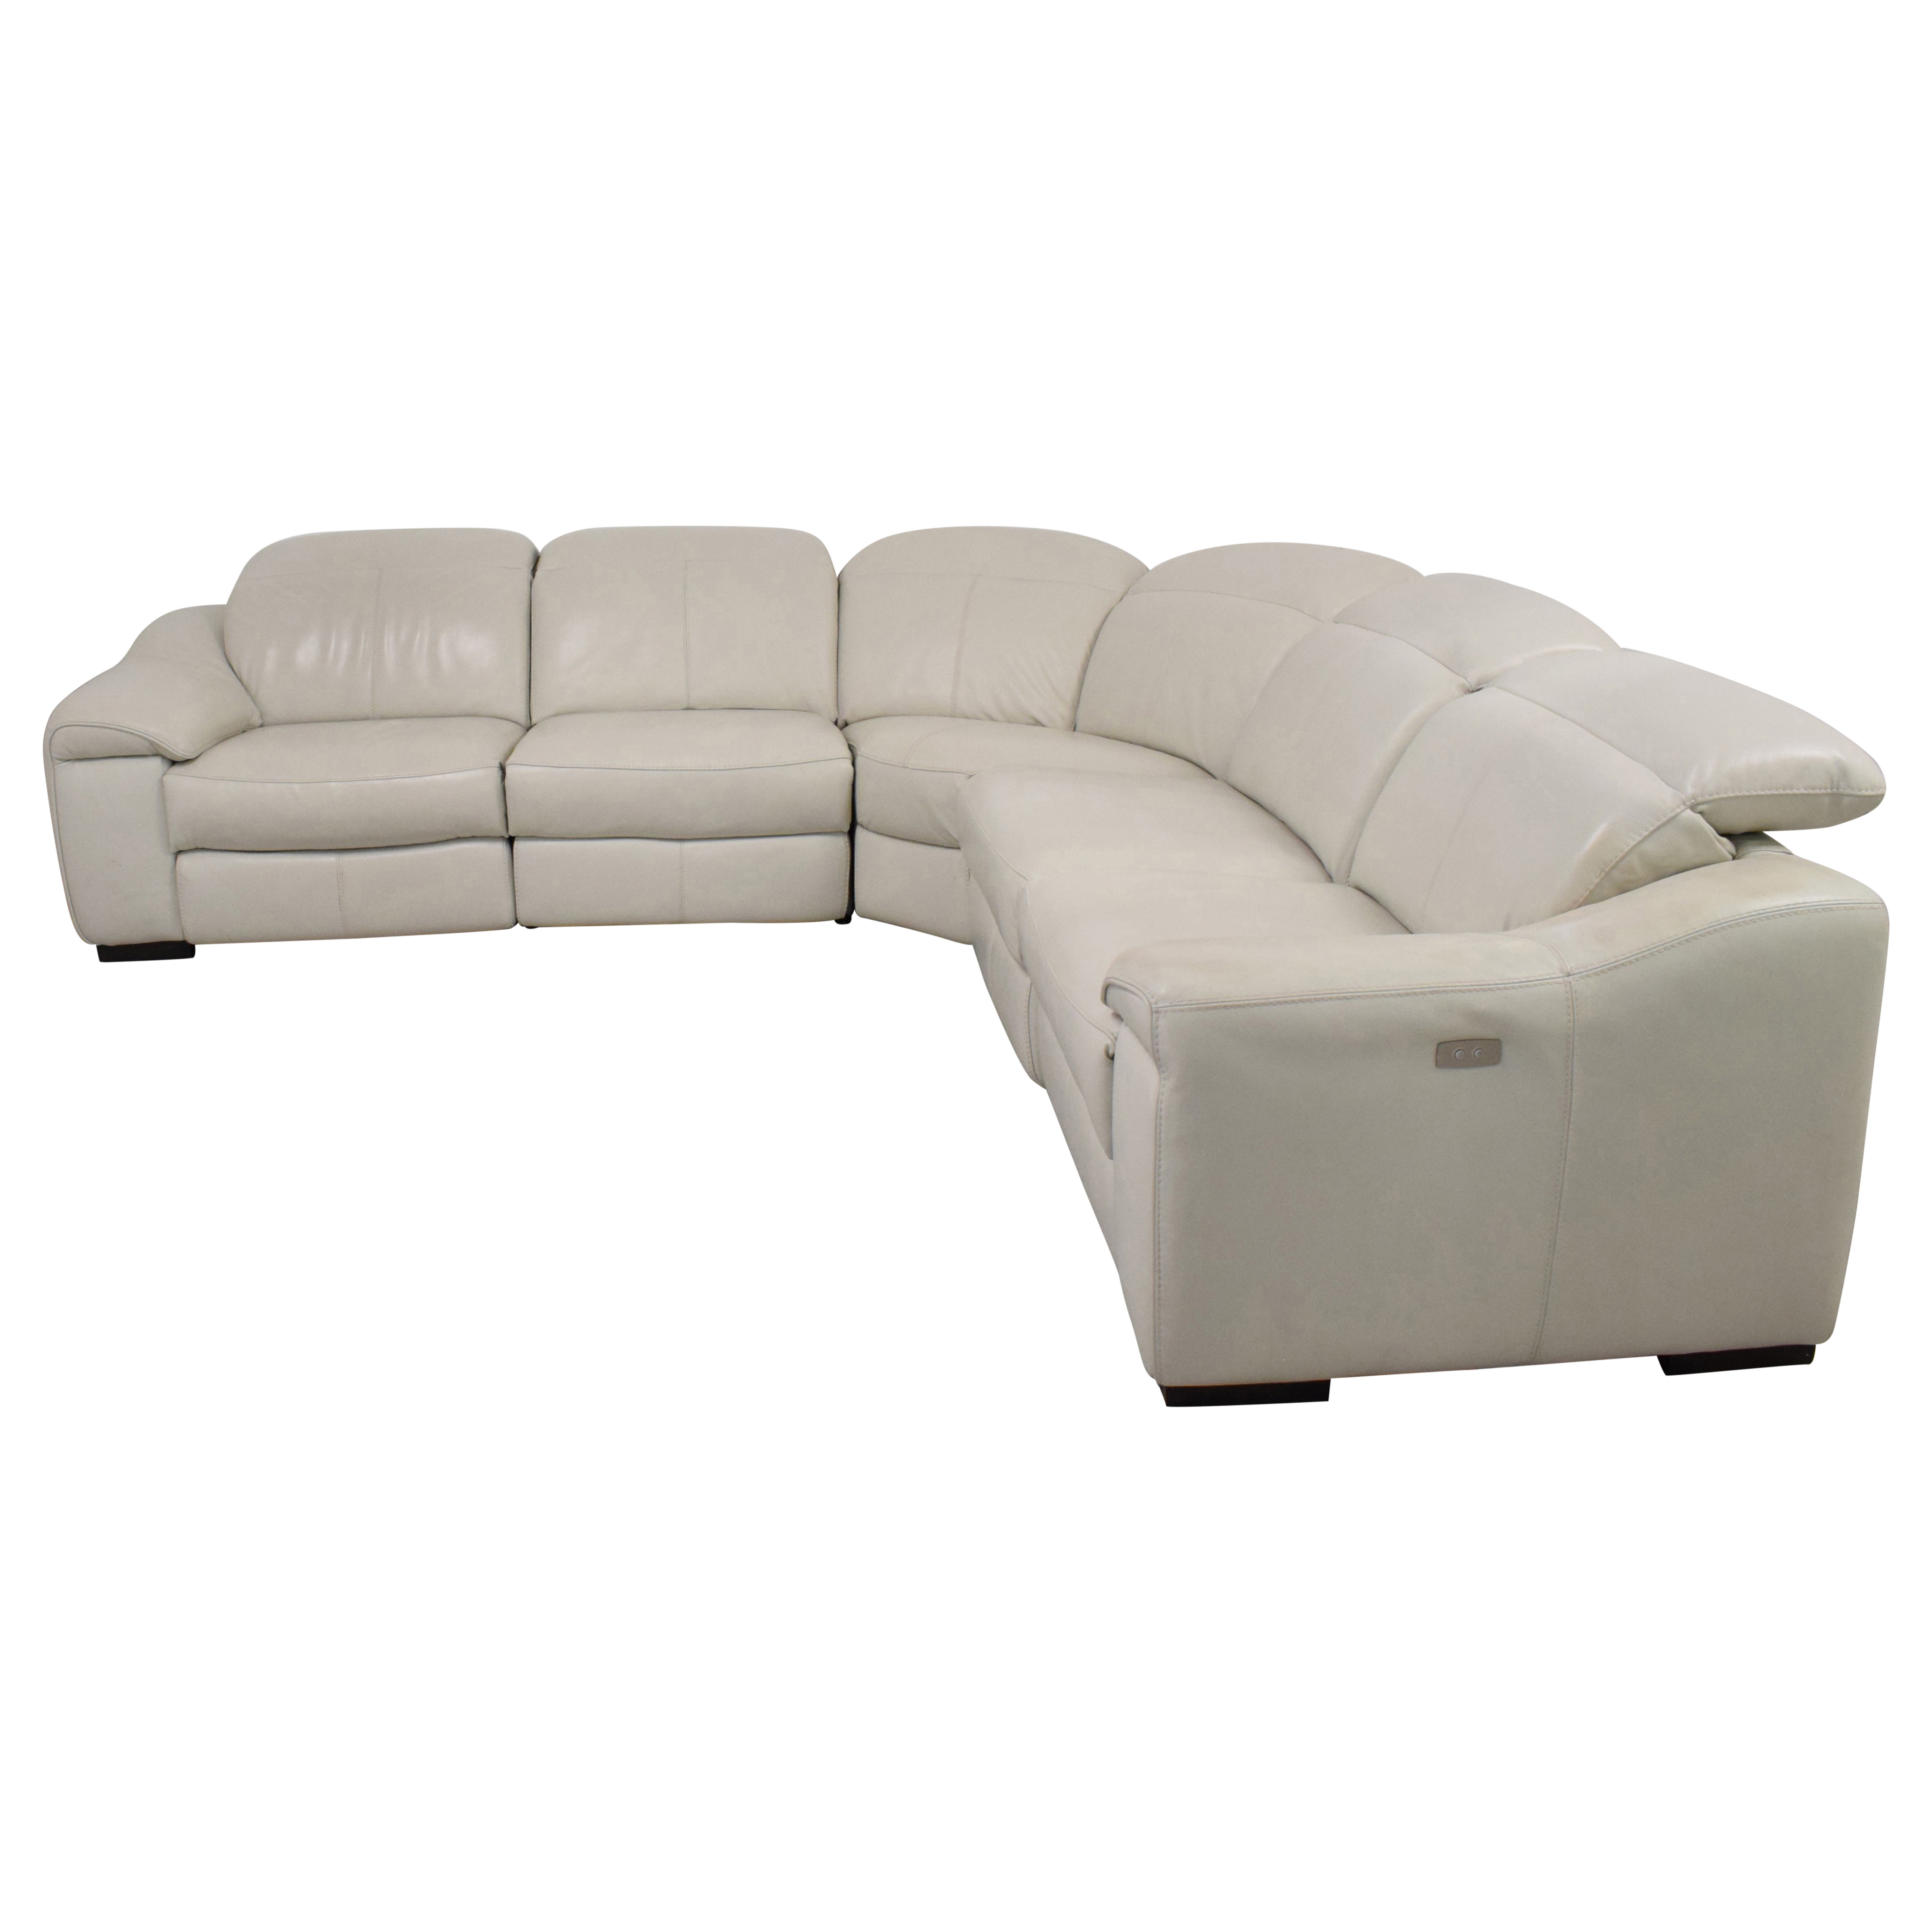 buy Macy's Power Reclining Sectional Sofa Macy's